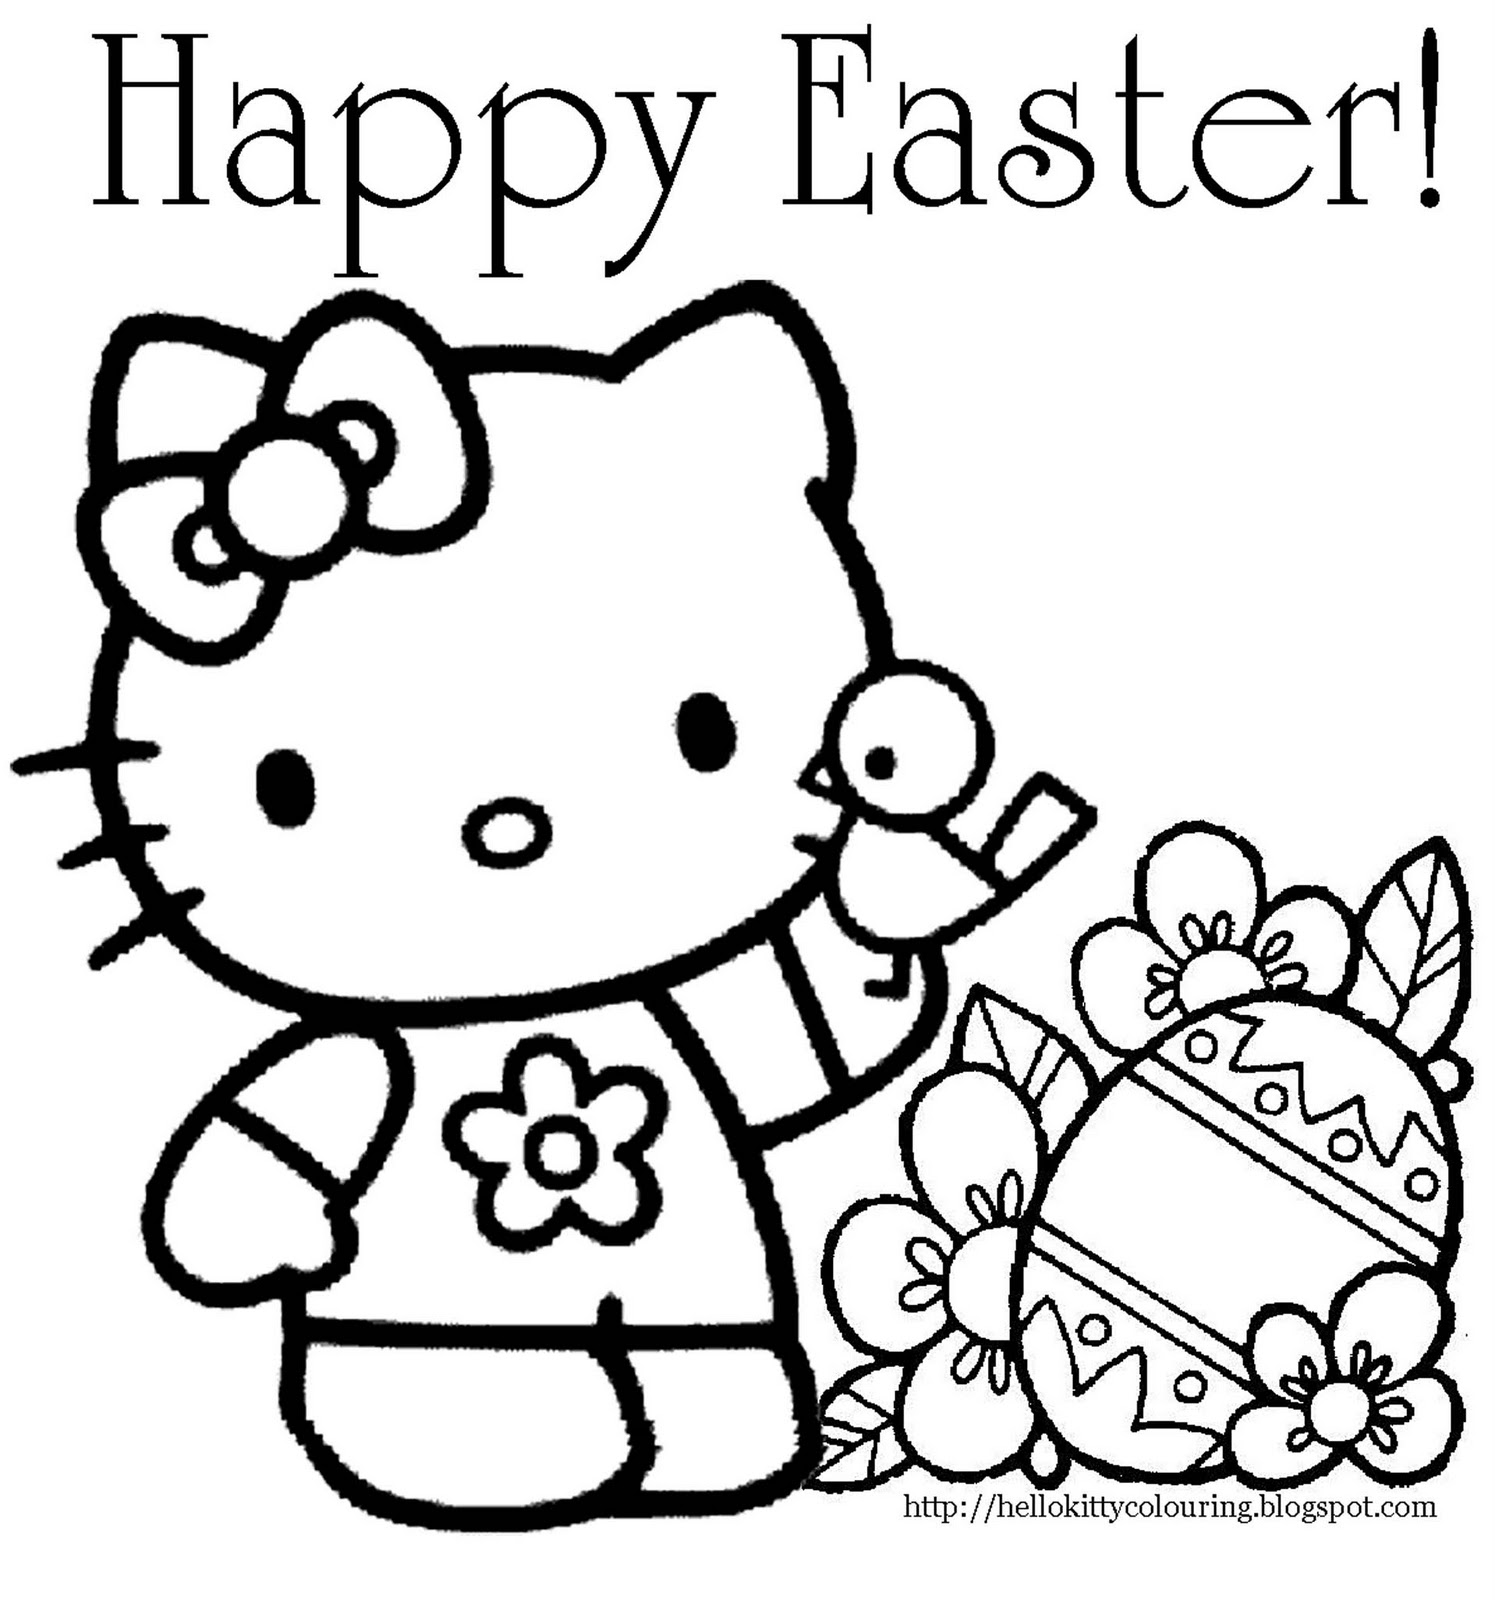 hello kitty free coloring pages - Coloring Pages {Hello Kitty} on Pinterest Hello Kitty